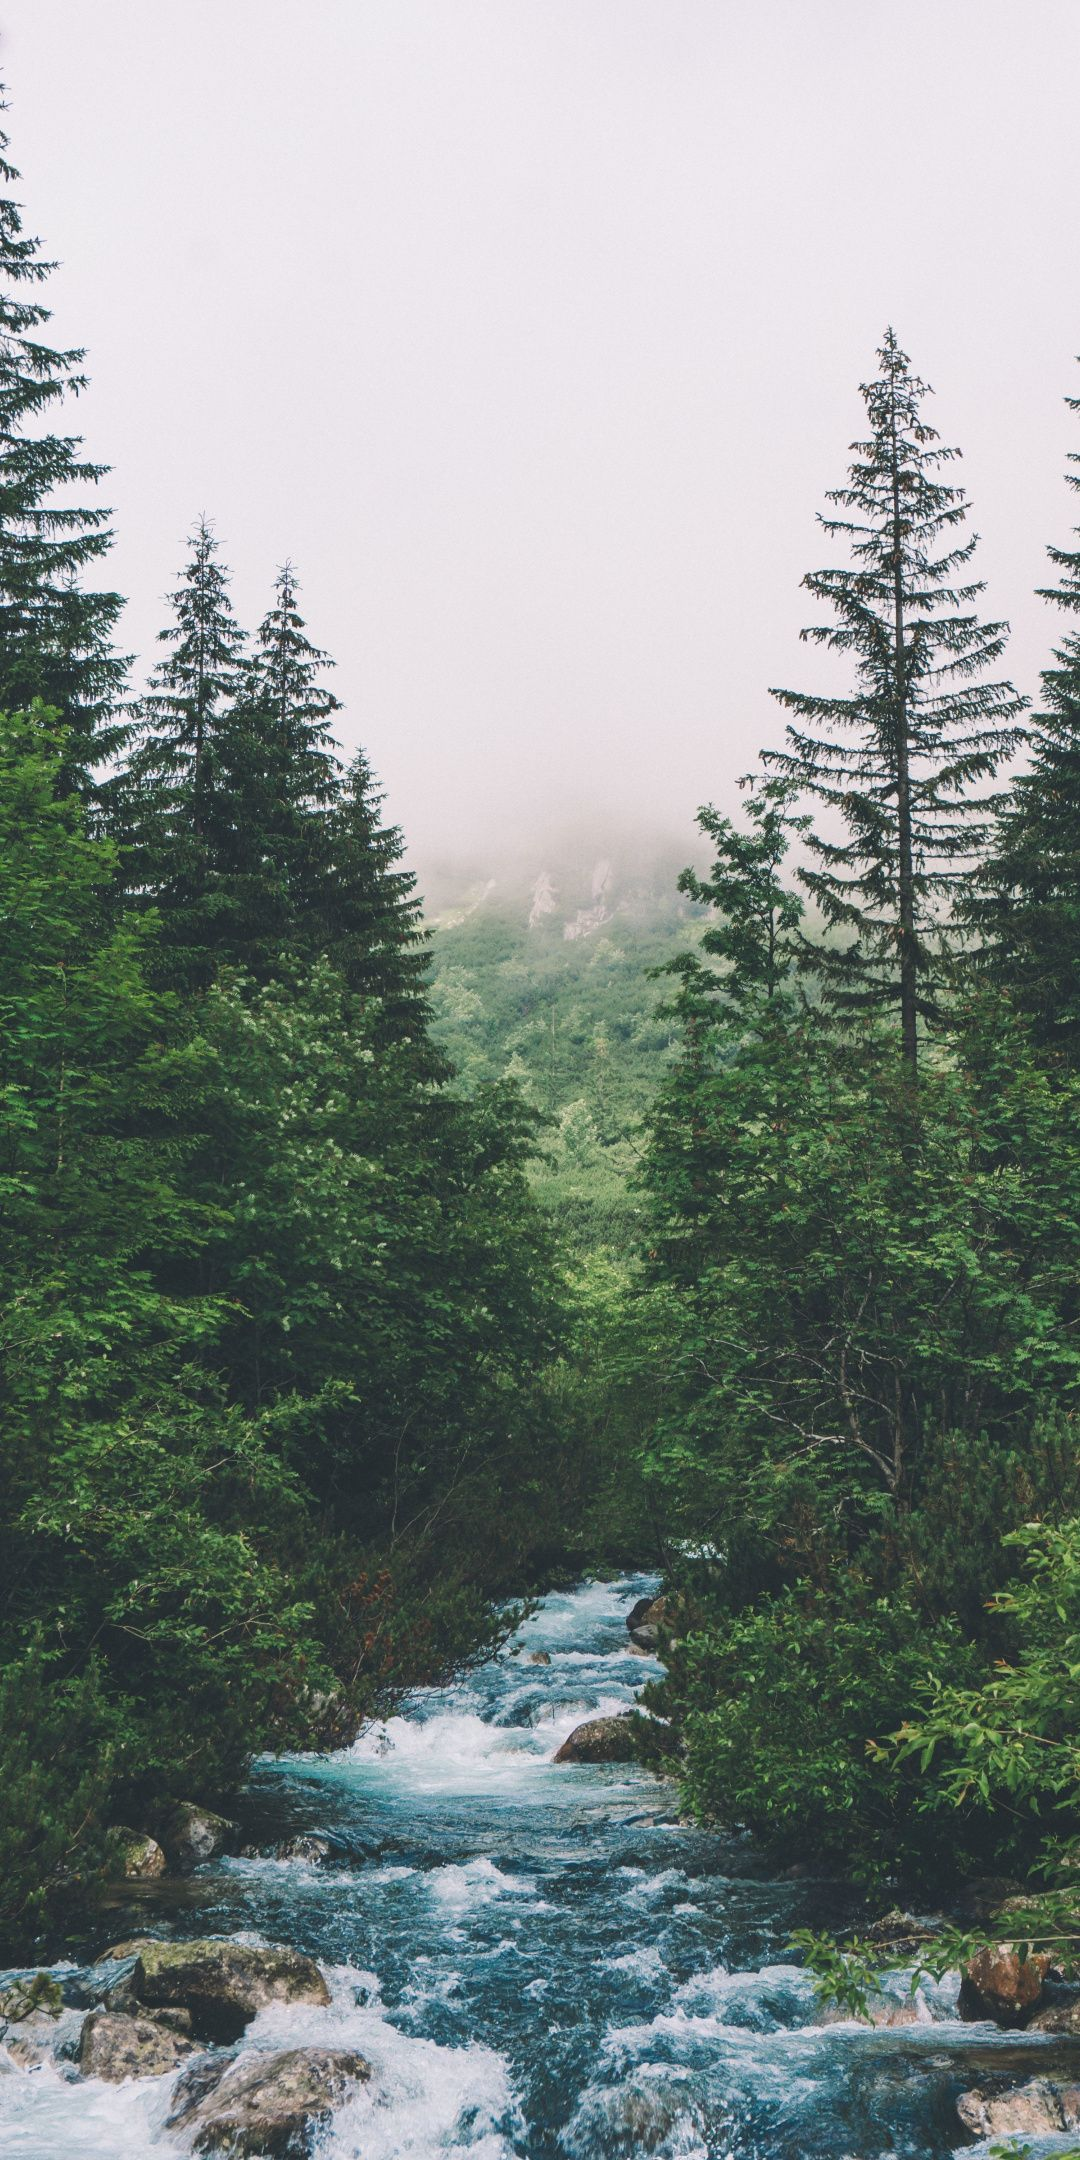 Forest, green trees, water stream, 1080x2160 wallpaper